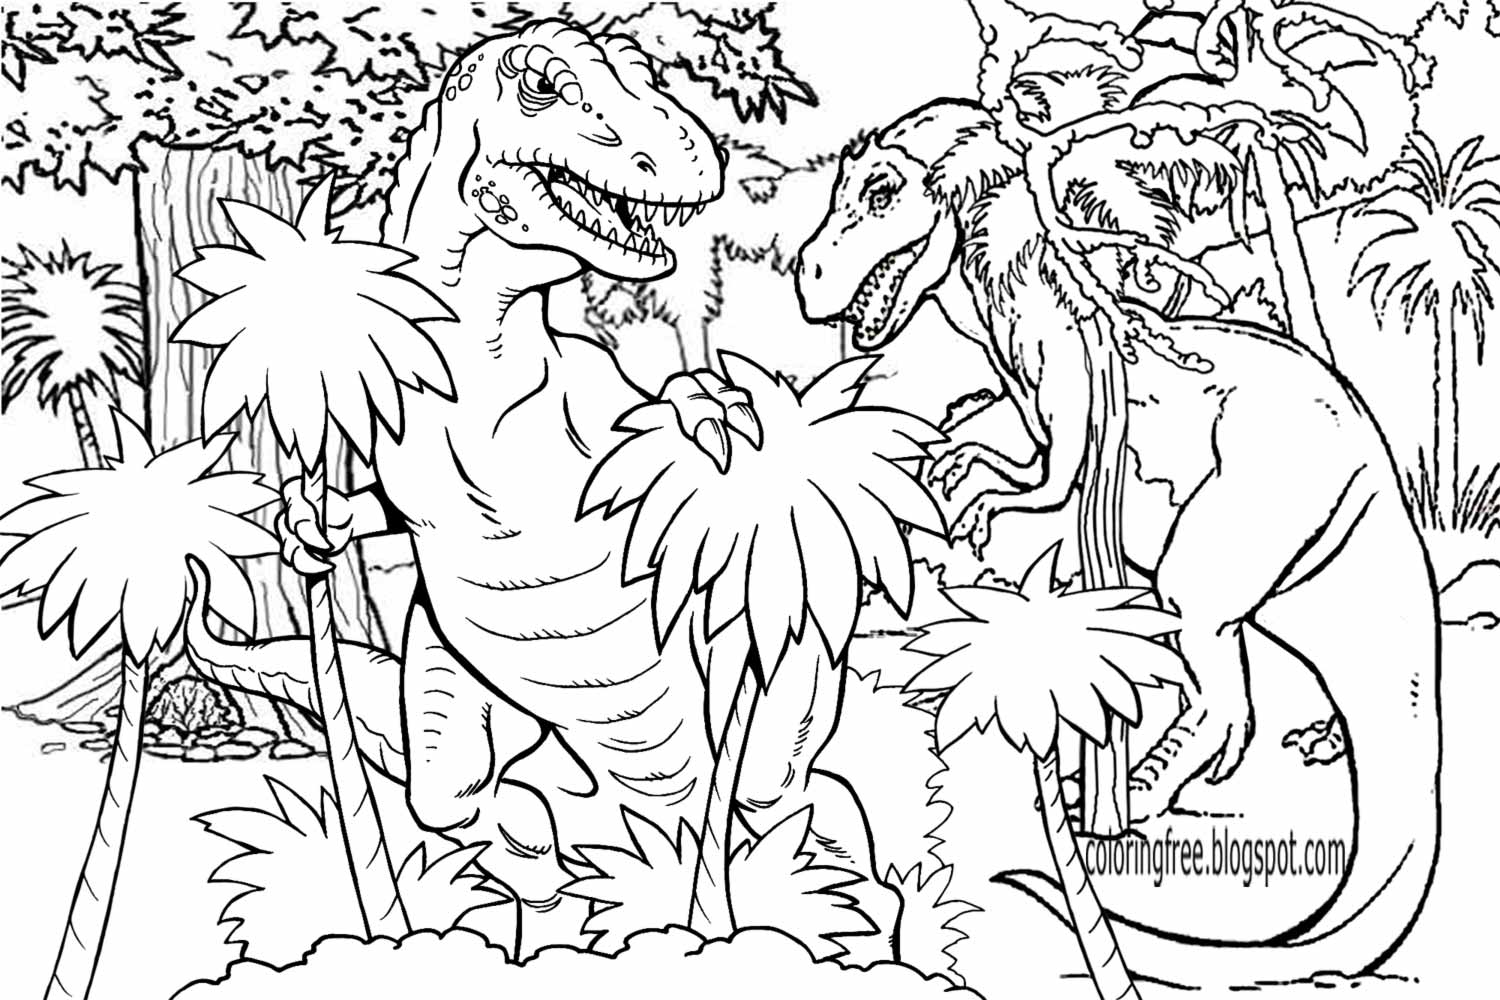 printable realistic dinosaur coloring pages lets coloring book prehistoric jurassic world dinosaurs printable pages dinosaur realistic coloring